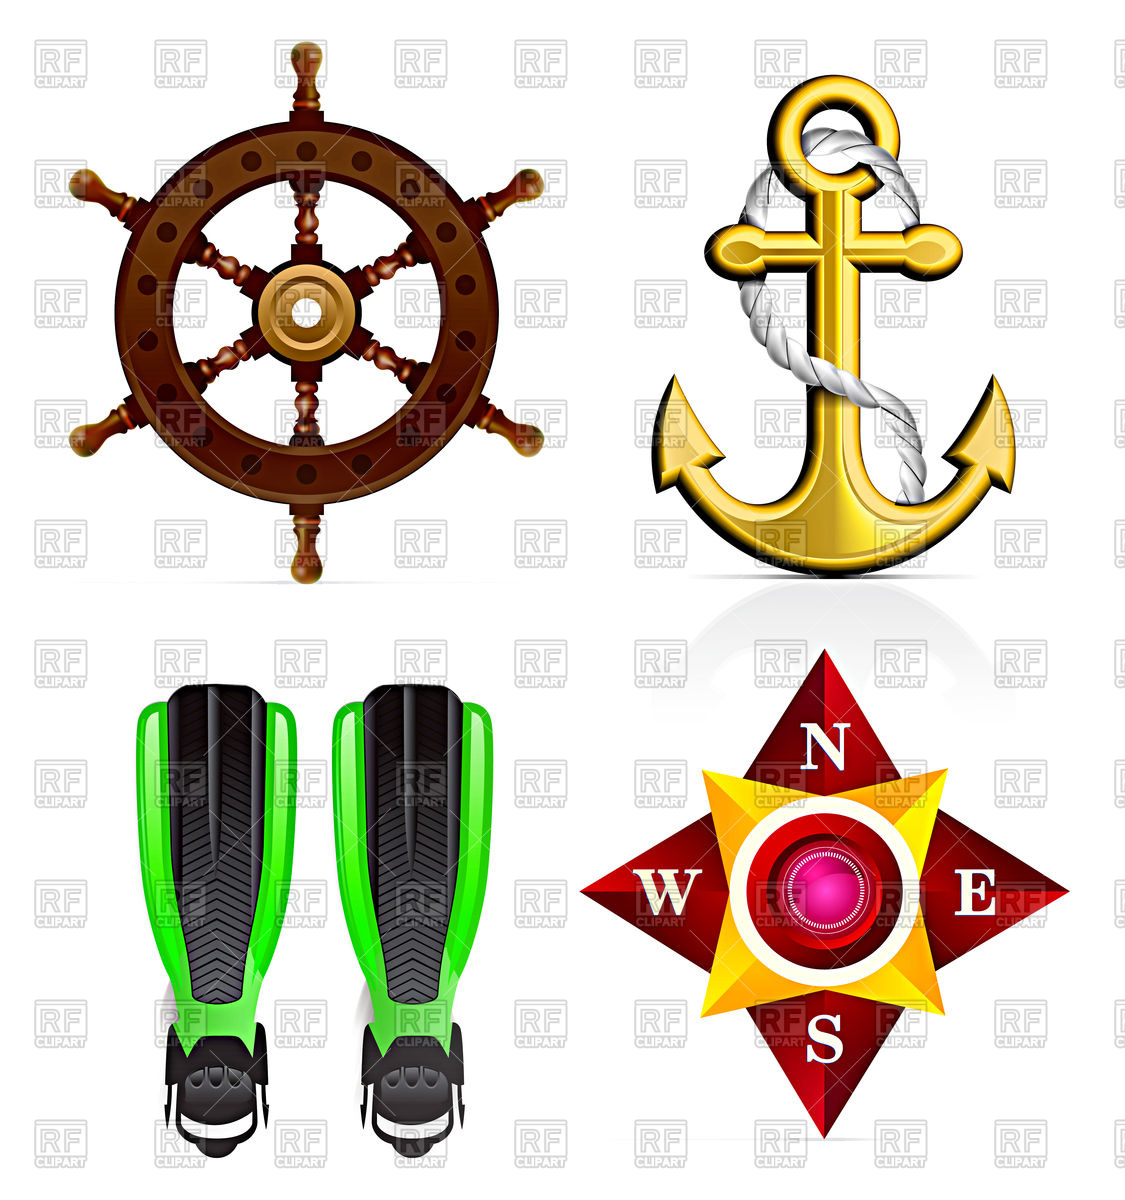 marine clipart at getdrawings com free for personal use marine rh getdrawings com marines clipart marines clip art graphics